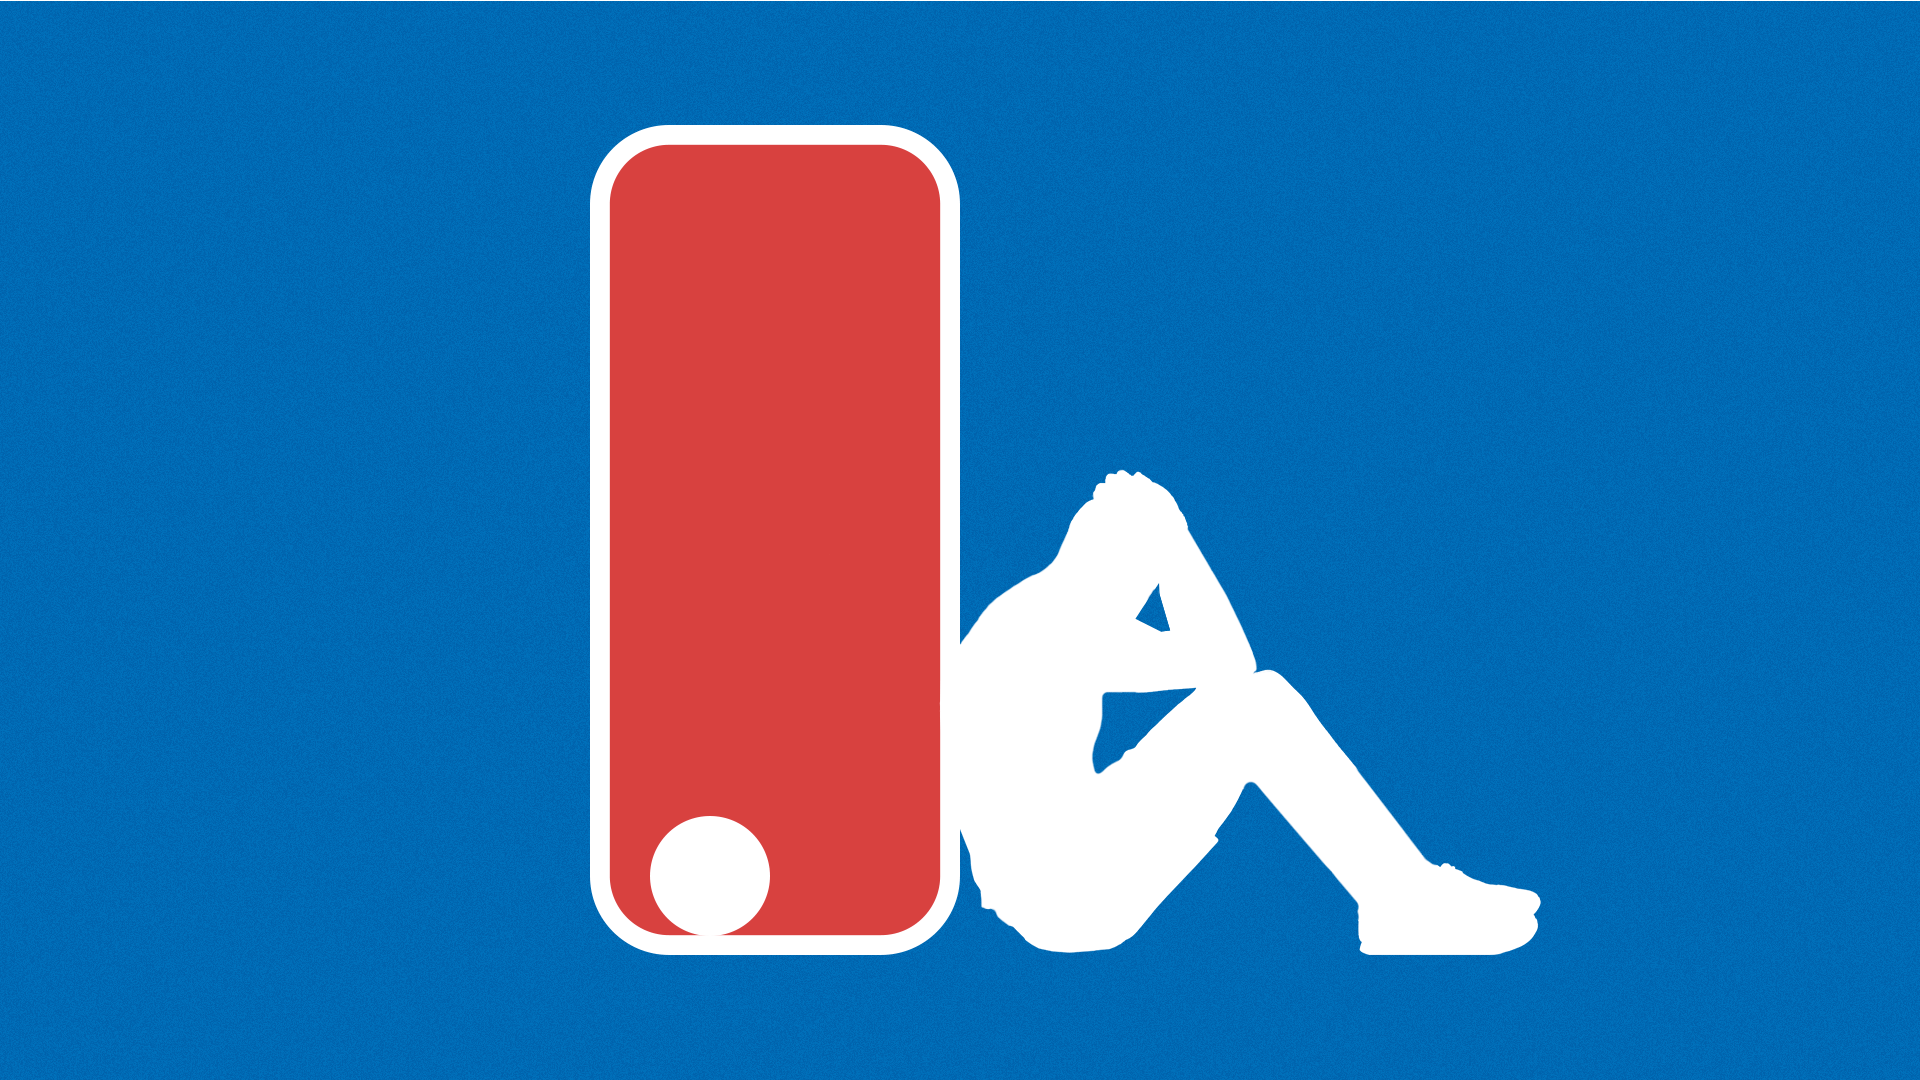 67c25e037c8d5 Illustration of the NBA logo with the ball left abandoned and the player  sitting and leaning